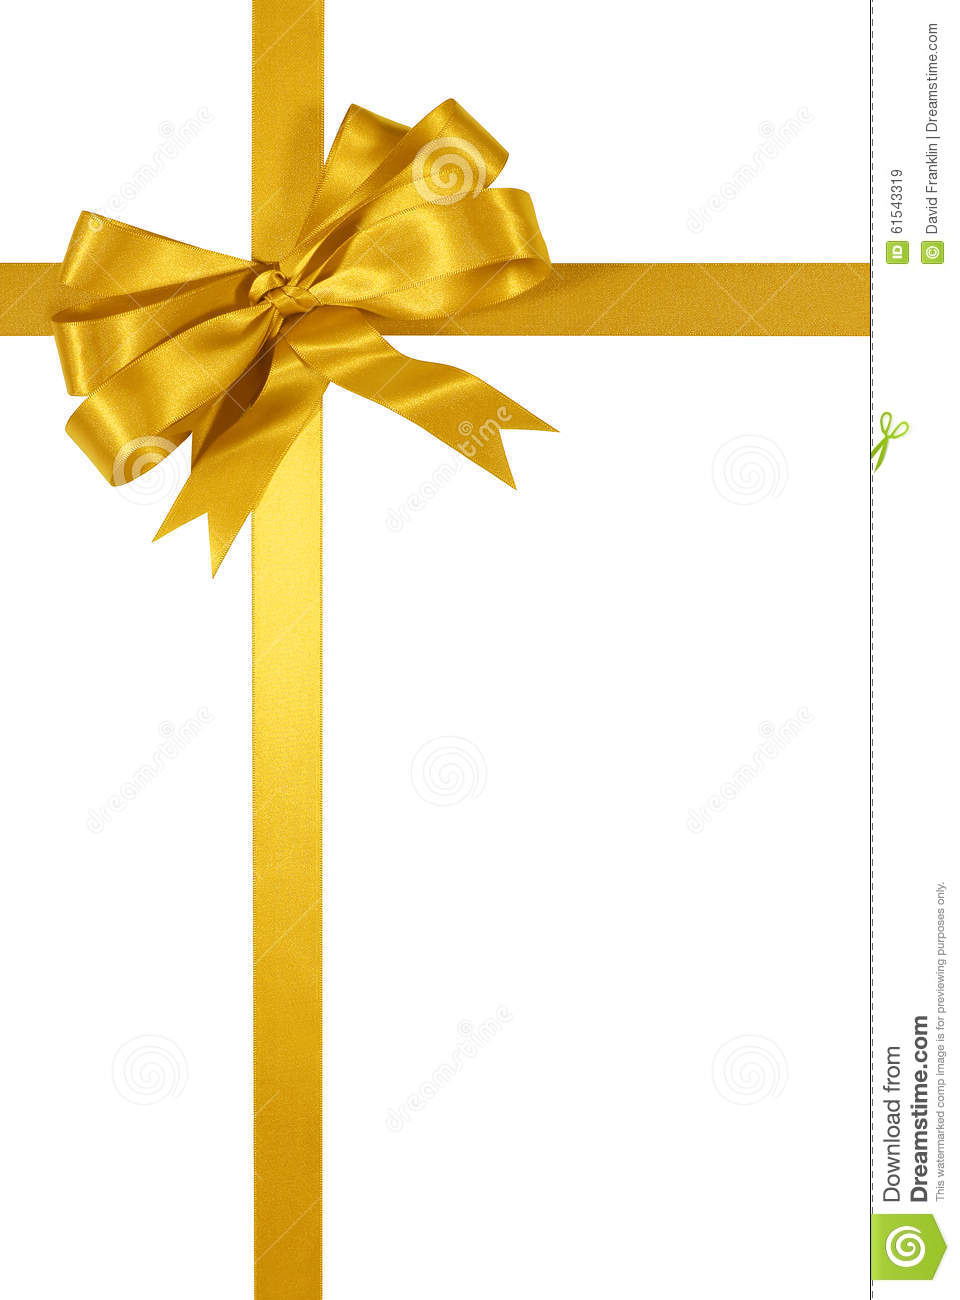 Download Gold Christmas Gift Ribbon Bow Isolated On White Background Vertical Stock Image